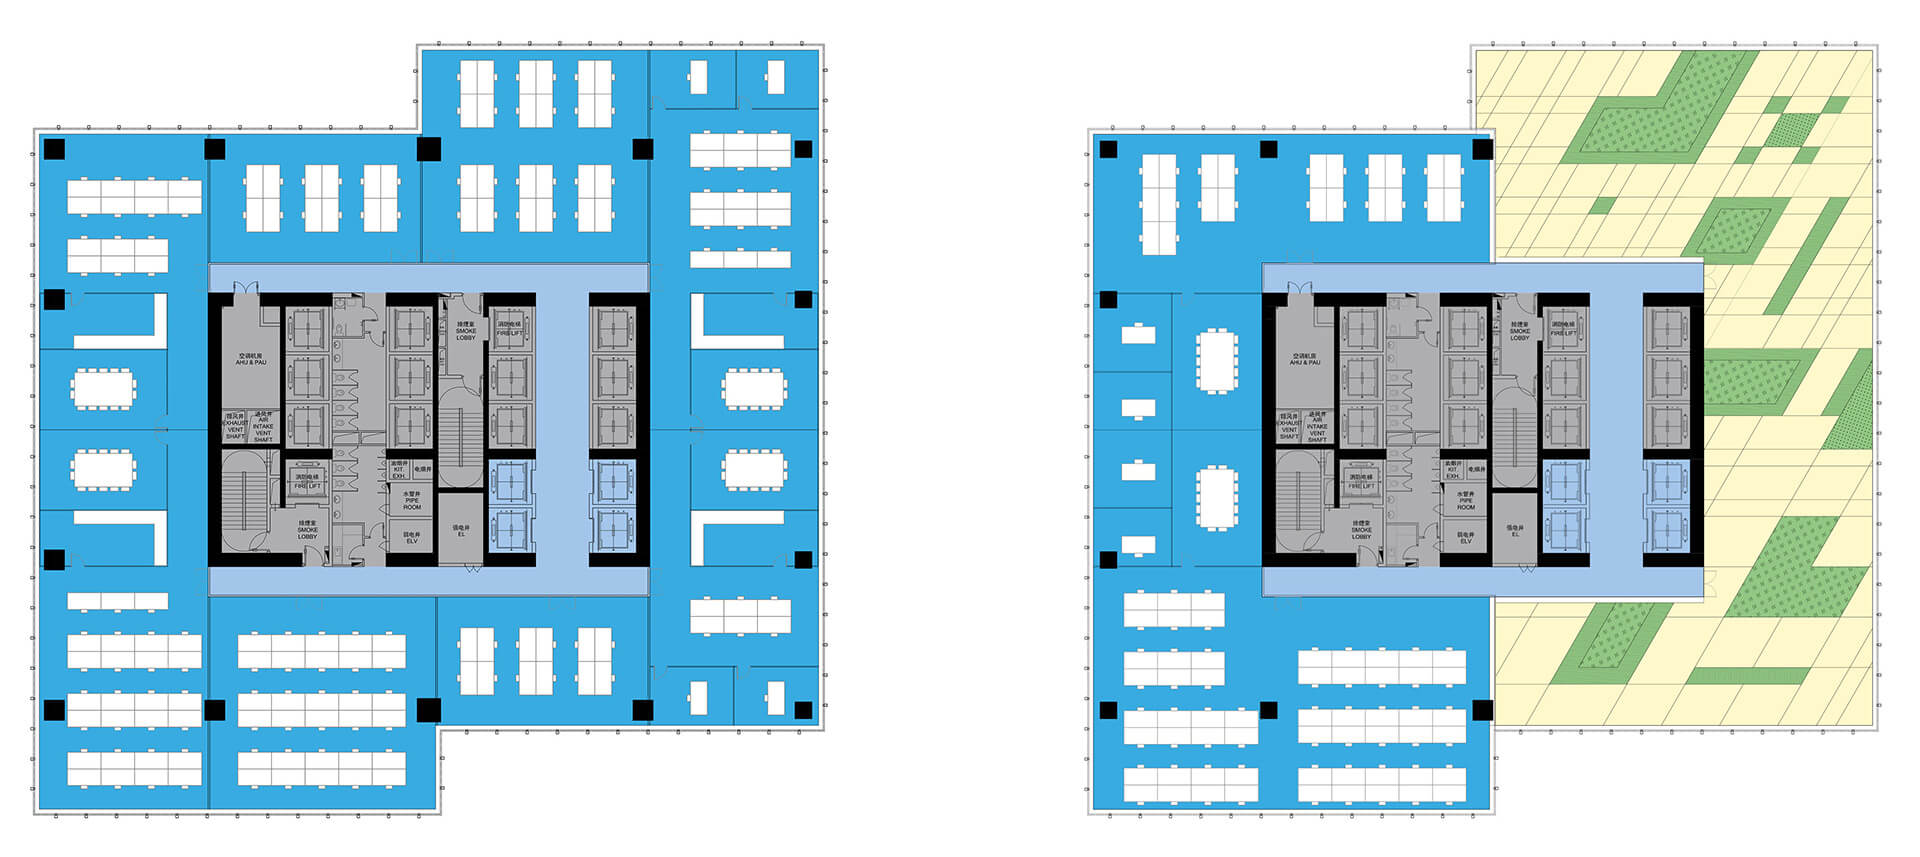 Floor plans of the office spaces | Prince Plaza | OMA | STIRworld